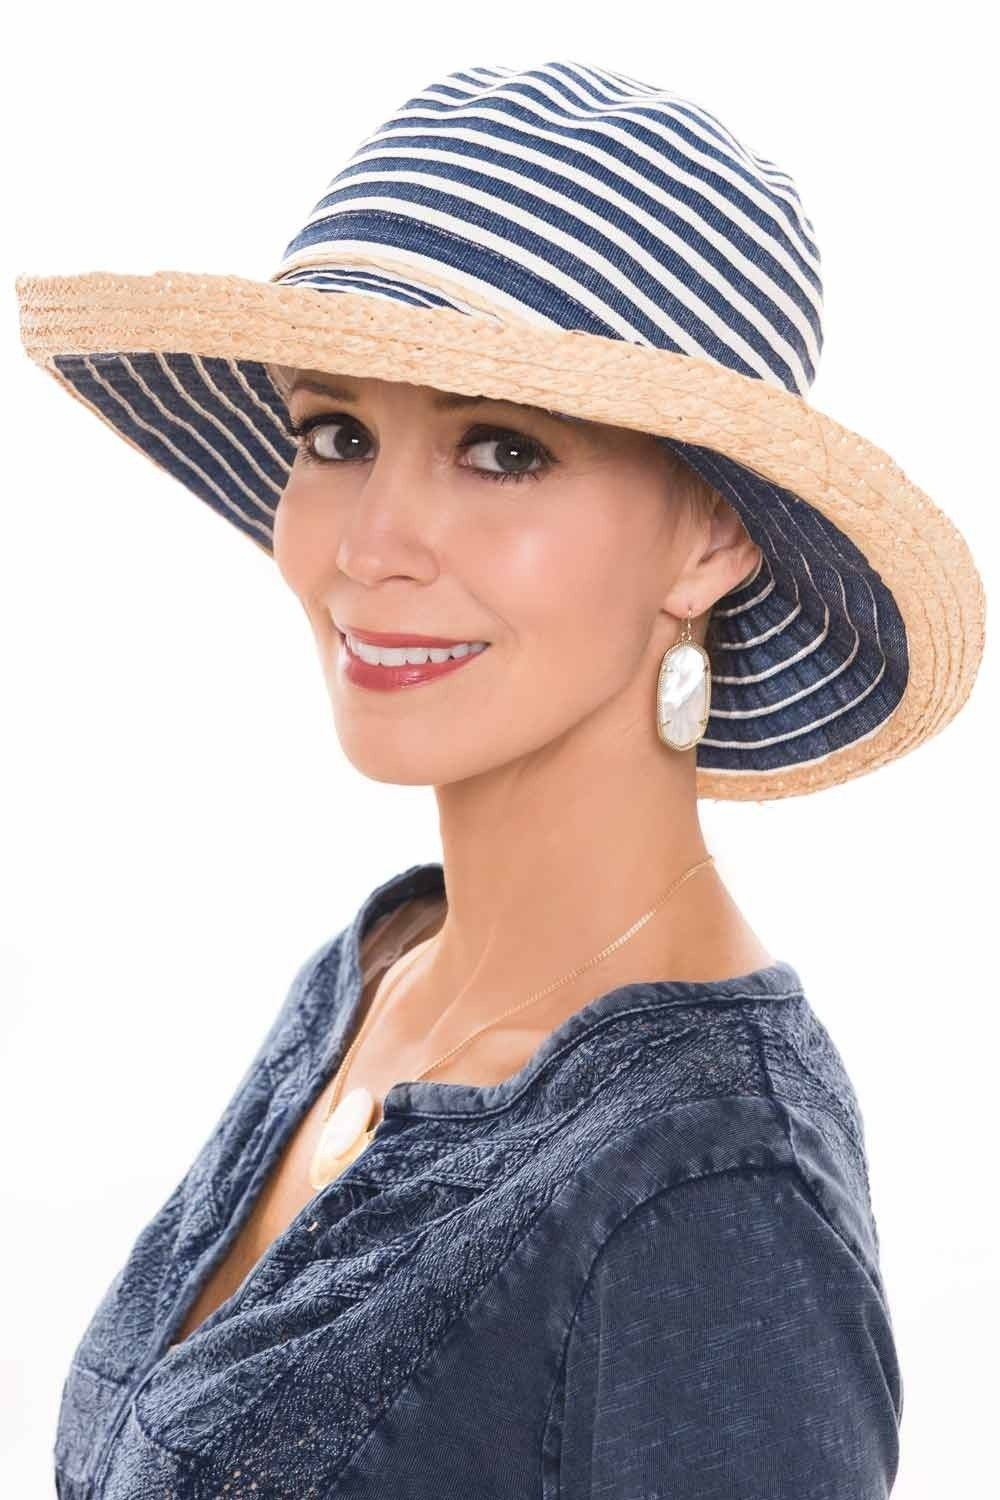 897abc4b492 Rivka Crushable Ribbon Braid Sun Hat. This travel friendly full head  coverage sun hat is super cute with denim accents.